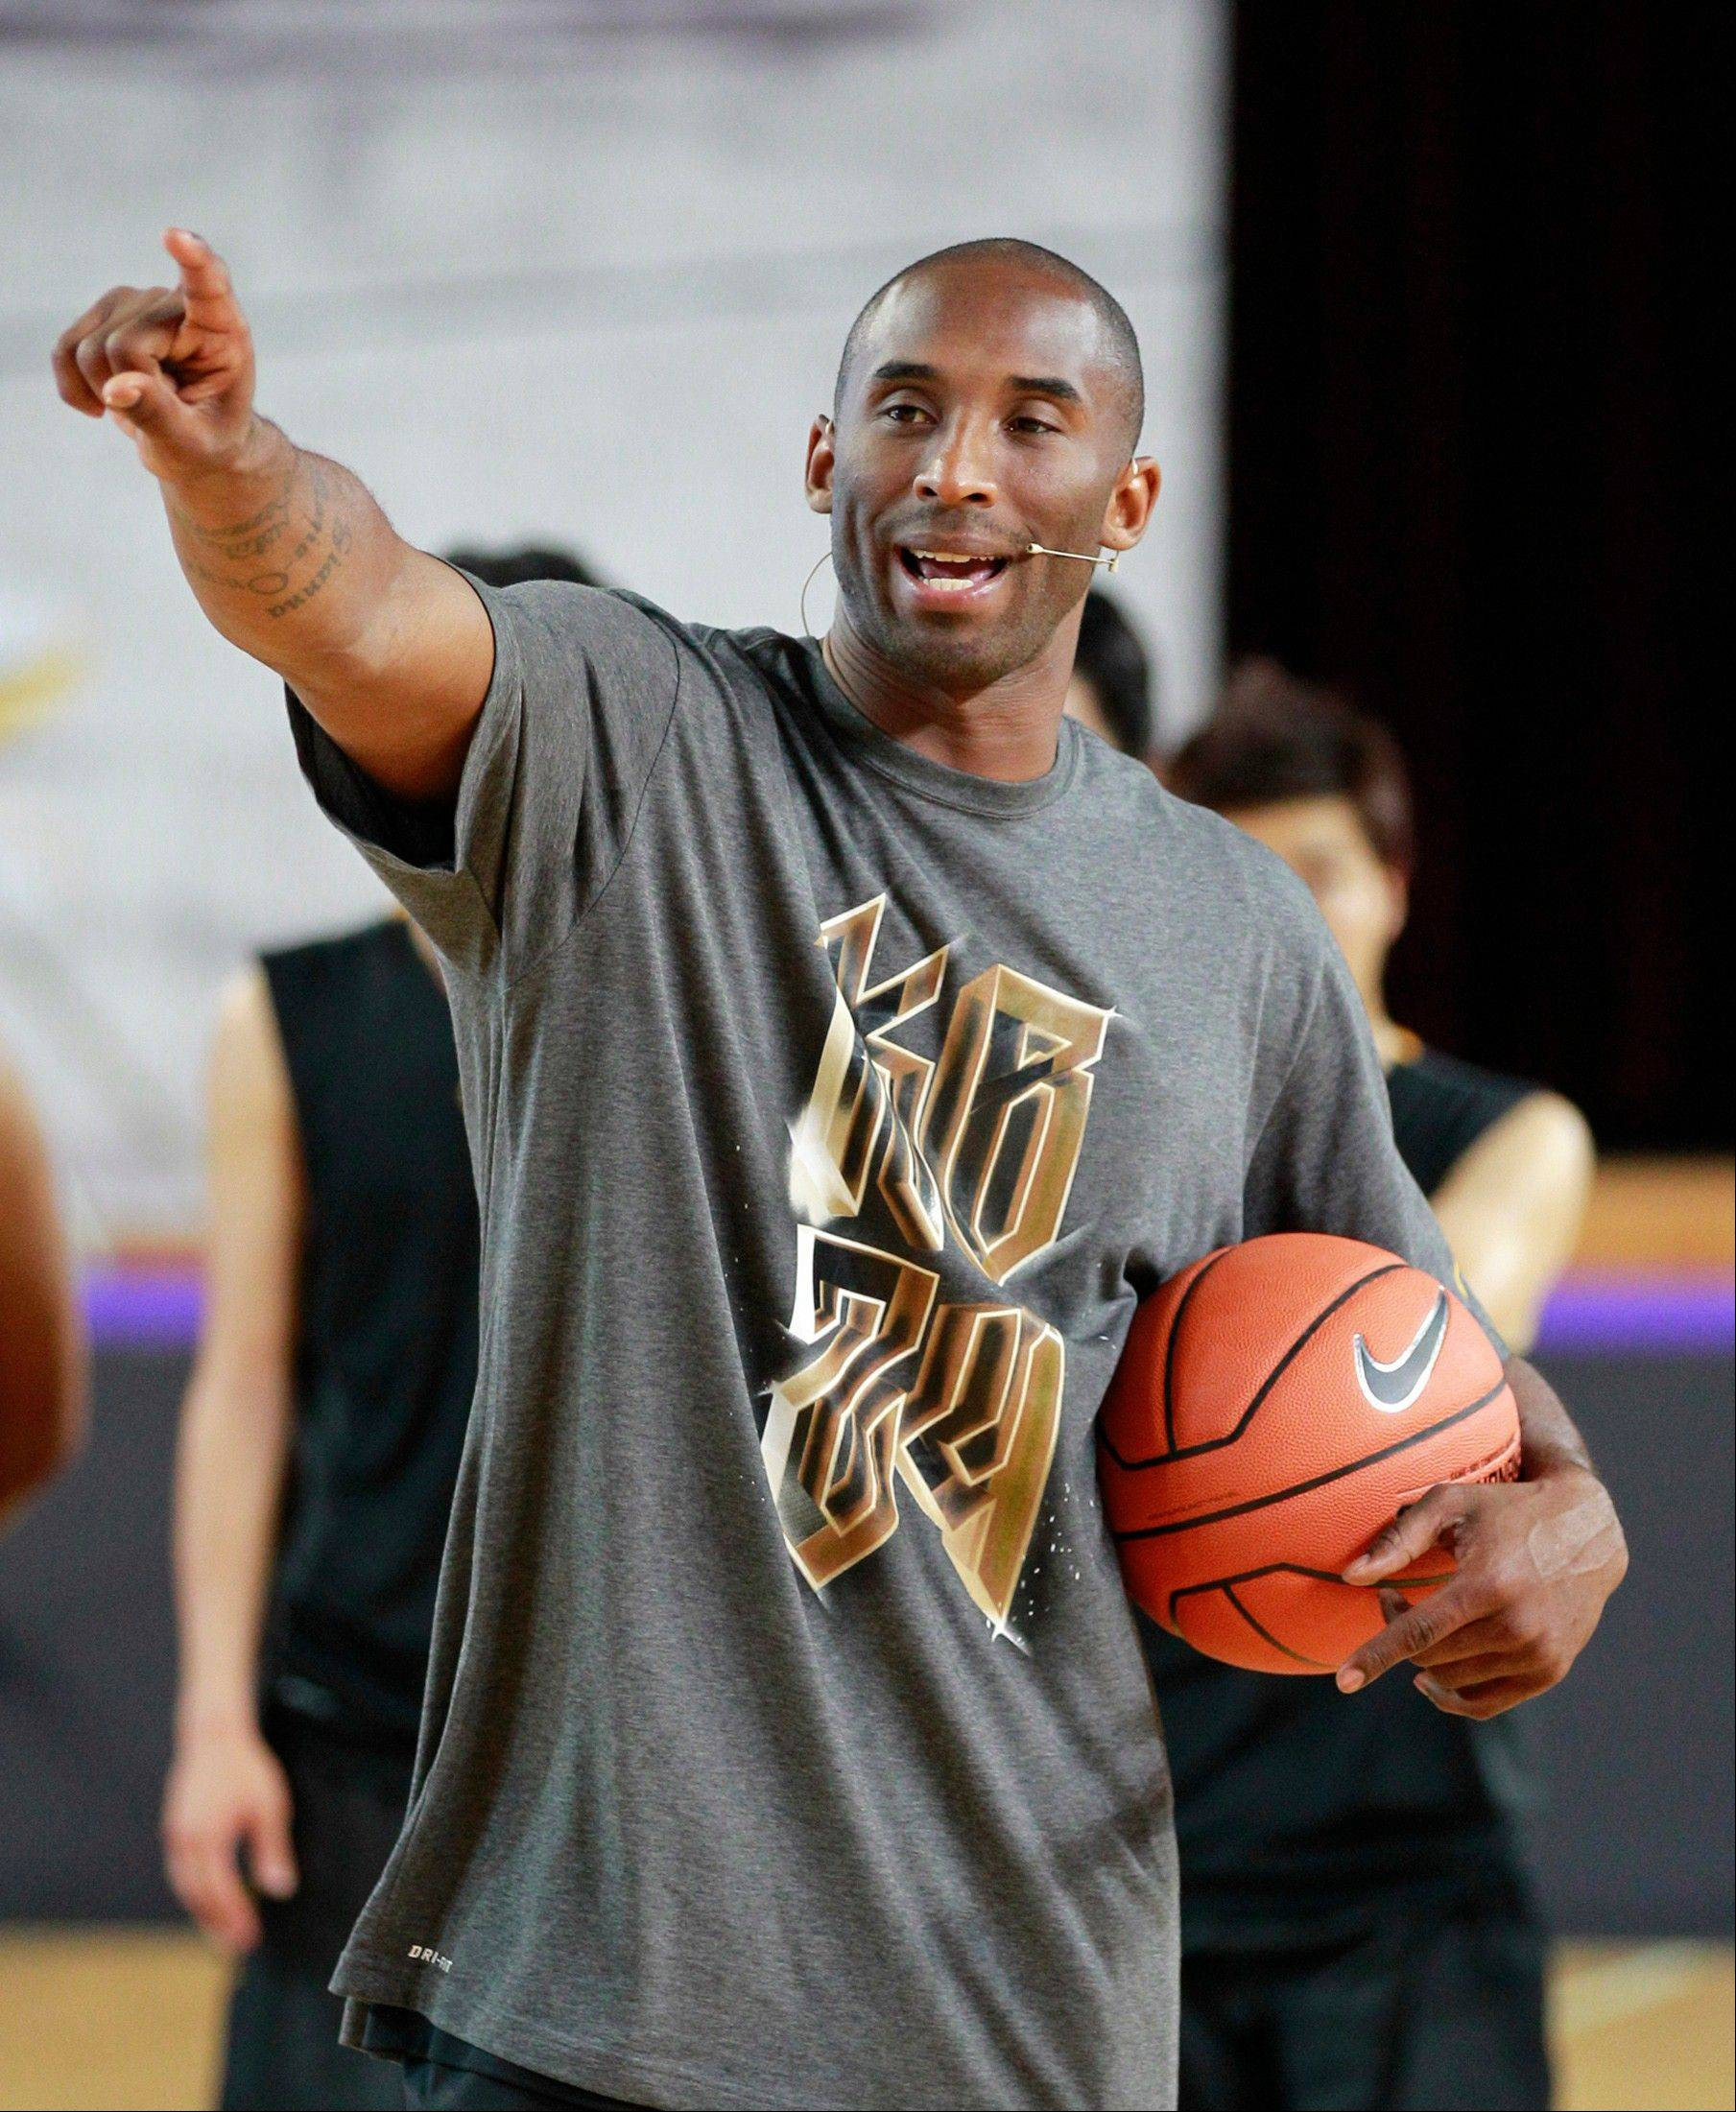 Lakers Kobe Bryant gives an instruction for South Korean students during his basketball clinic for youth in Seoul, South Korea, earlier this summer. Turkish club Besiktas says it is in talks to bring the star to Turkey to play during the NBA lockout.